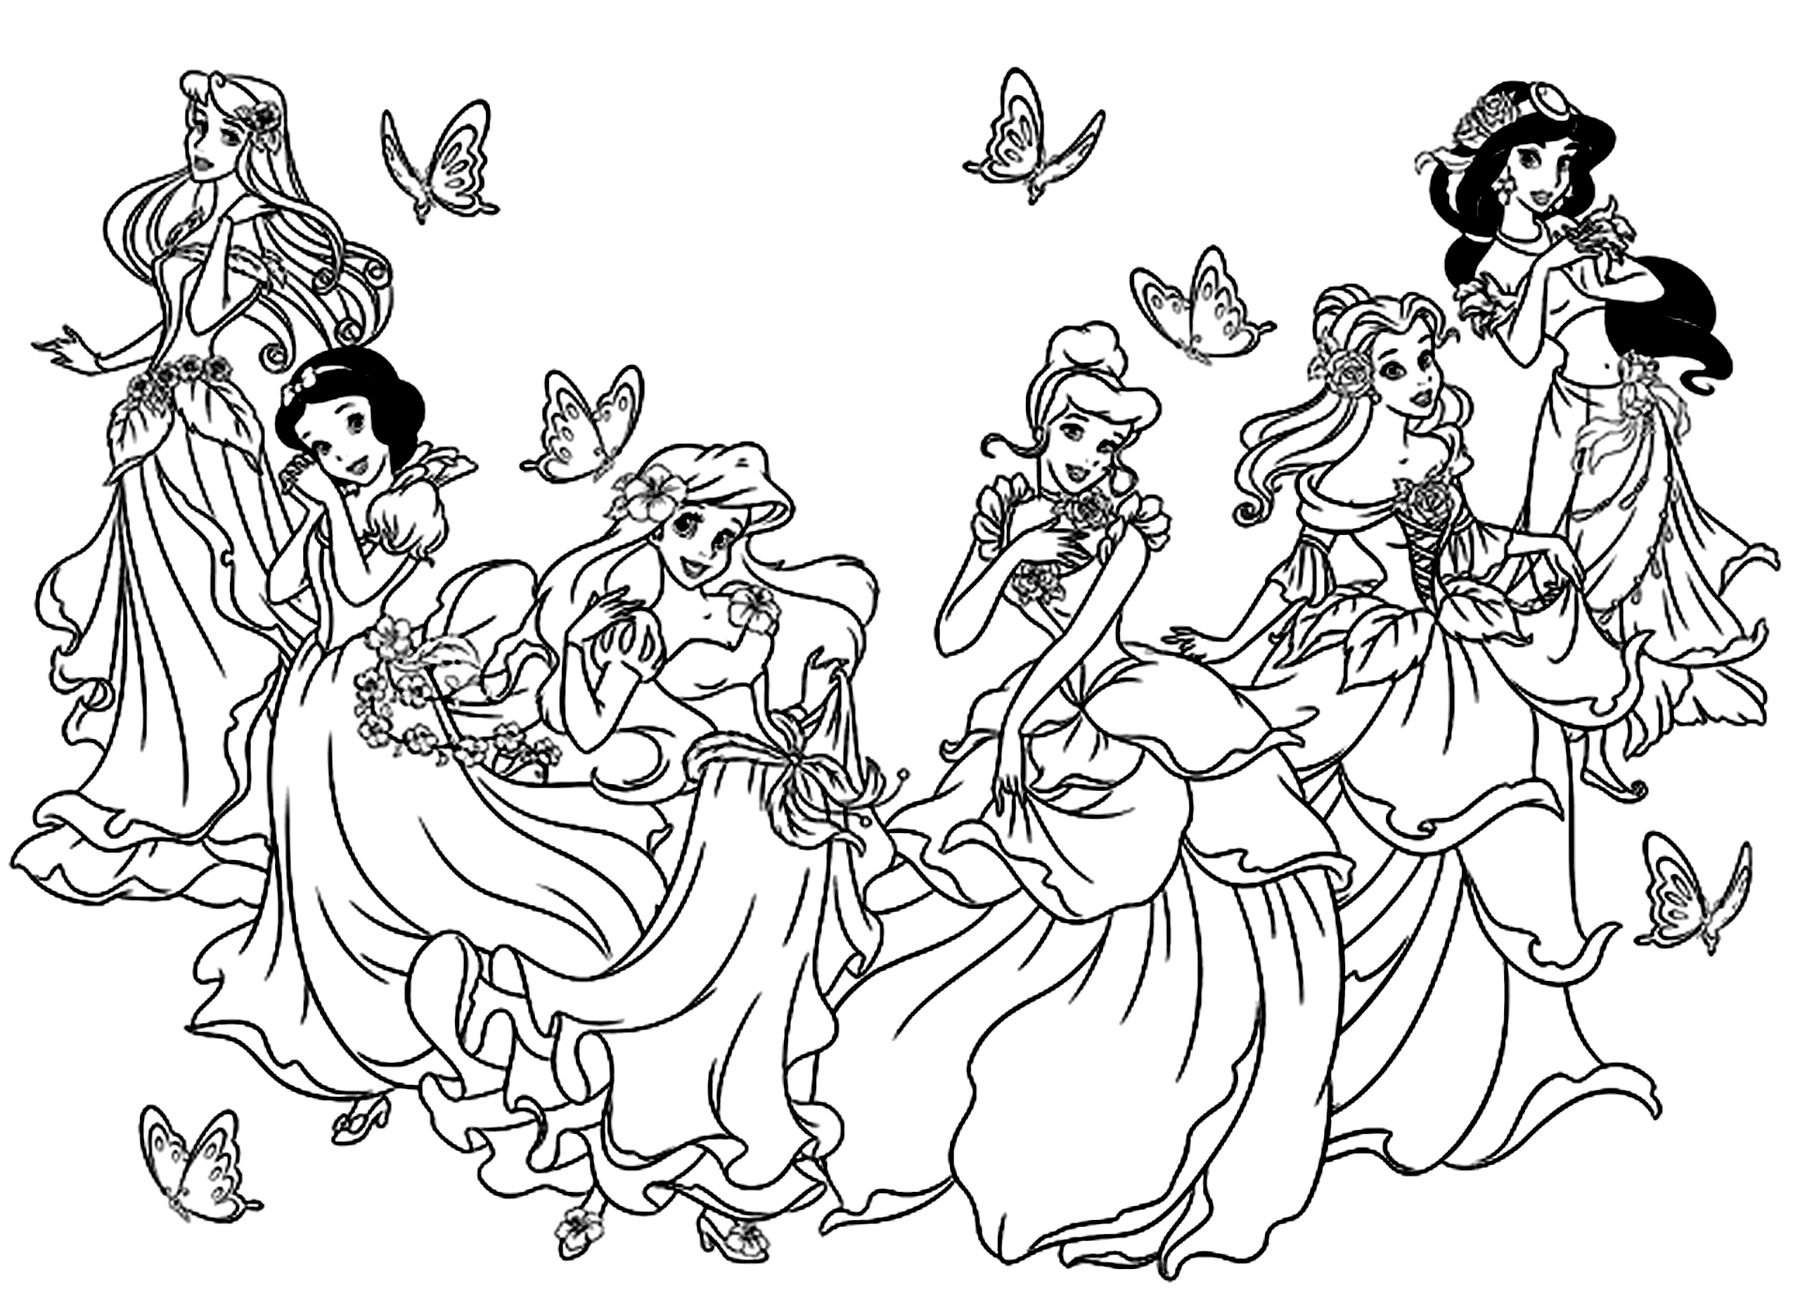 Return to childhood - Coloring Pages for adults  Dessin a